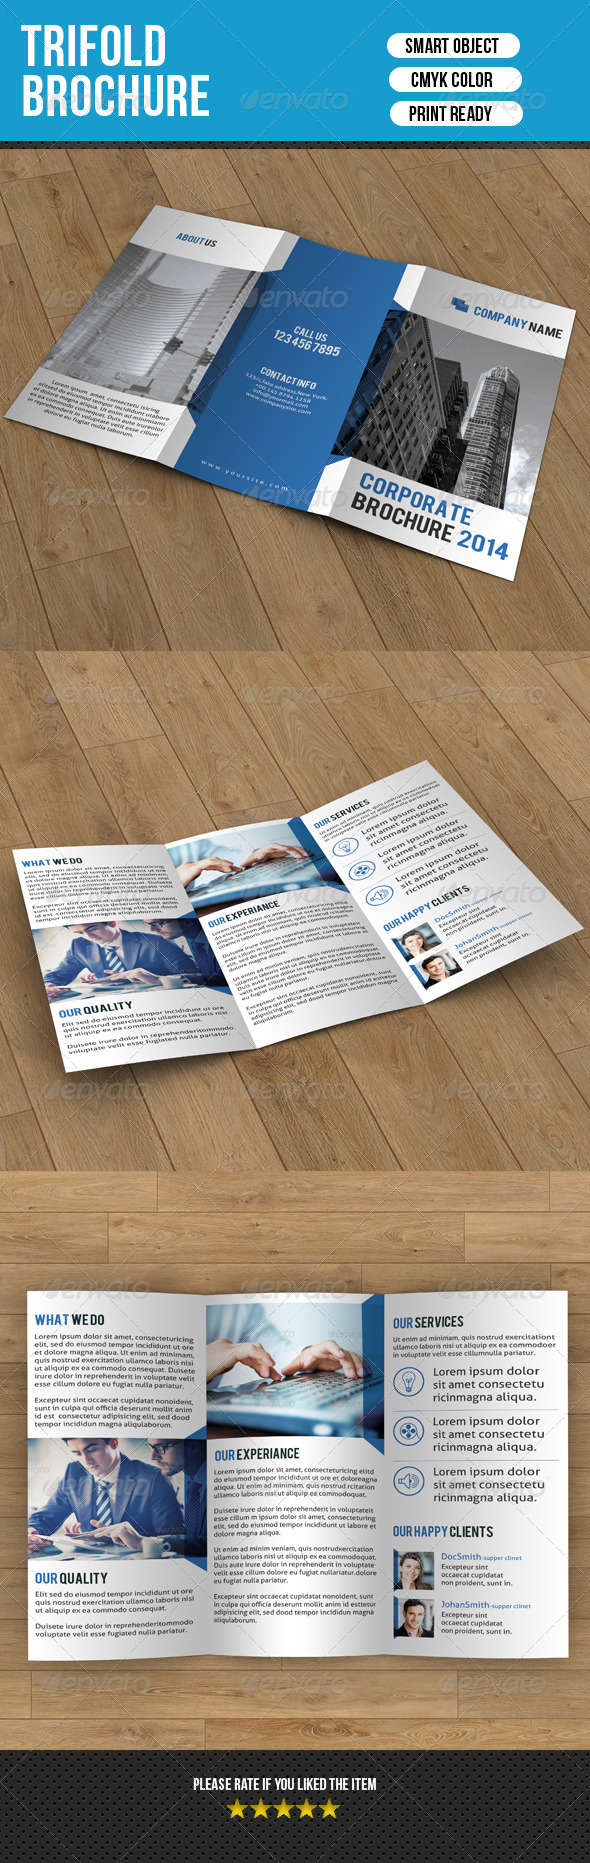 GraphicRiver Trifold Business Brochure-V04 7778793